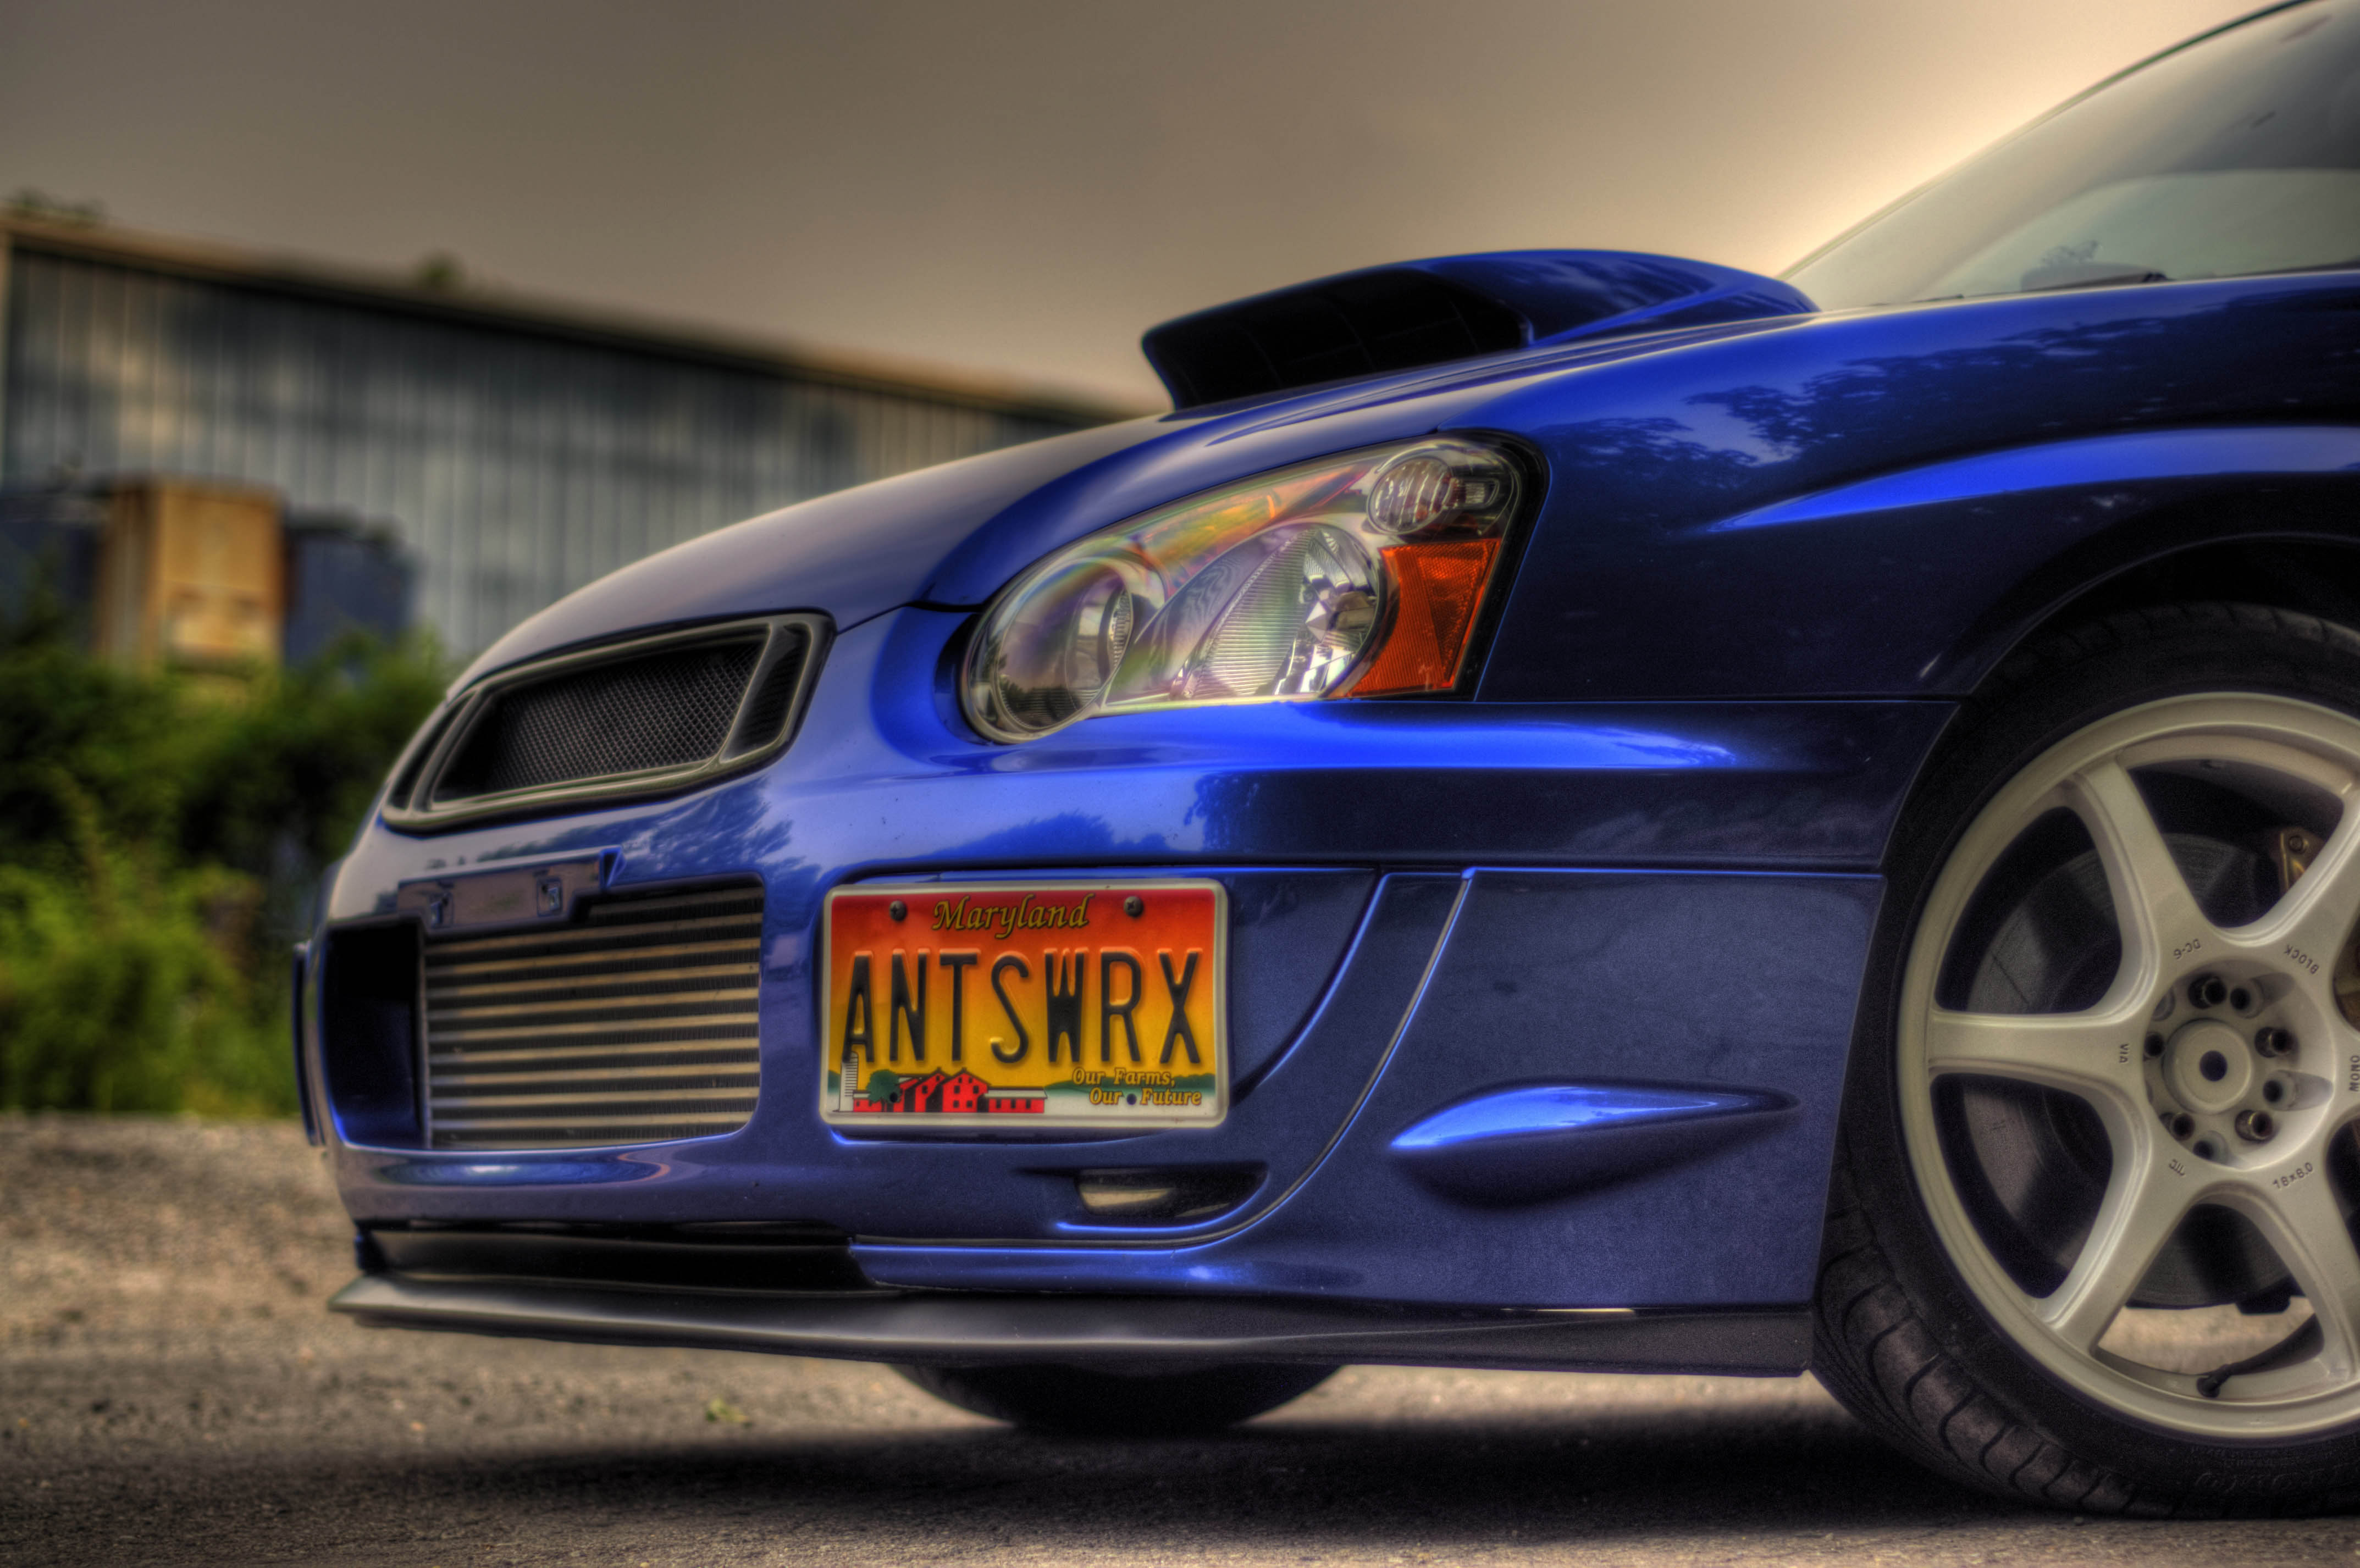 Anthony's STi - 35r - Can't believe she's leaving me.-smaller-jpg